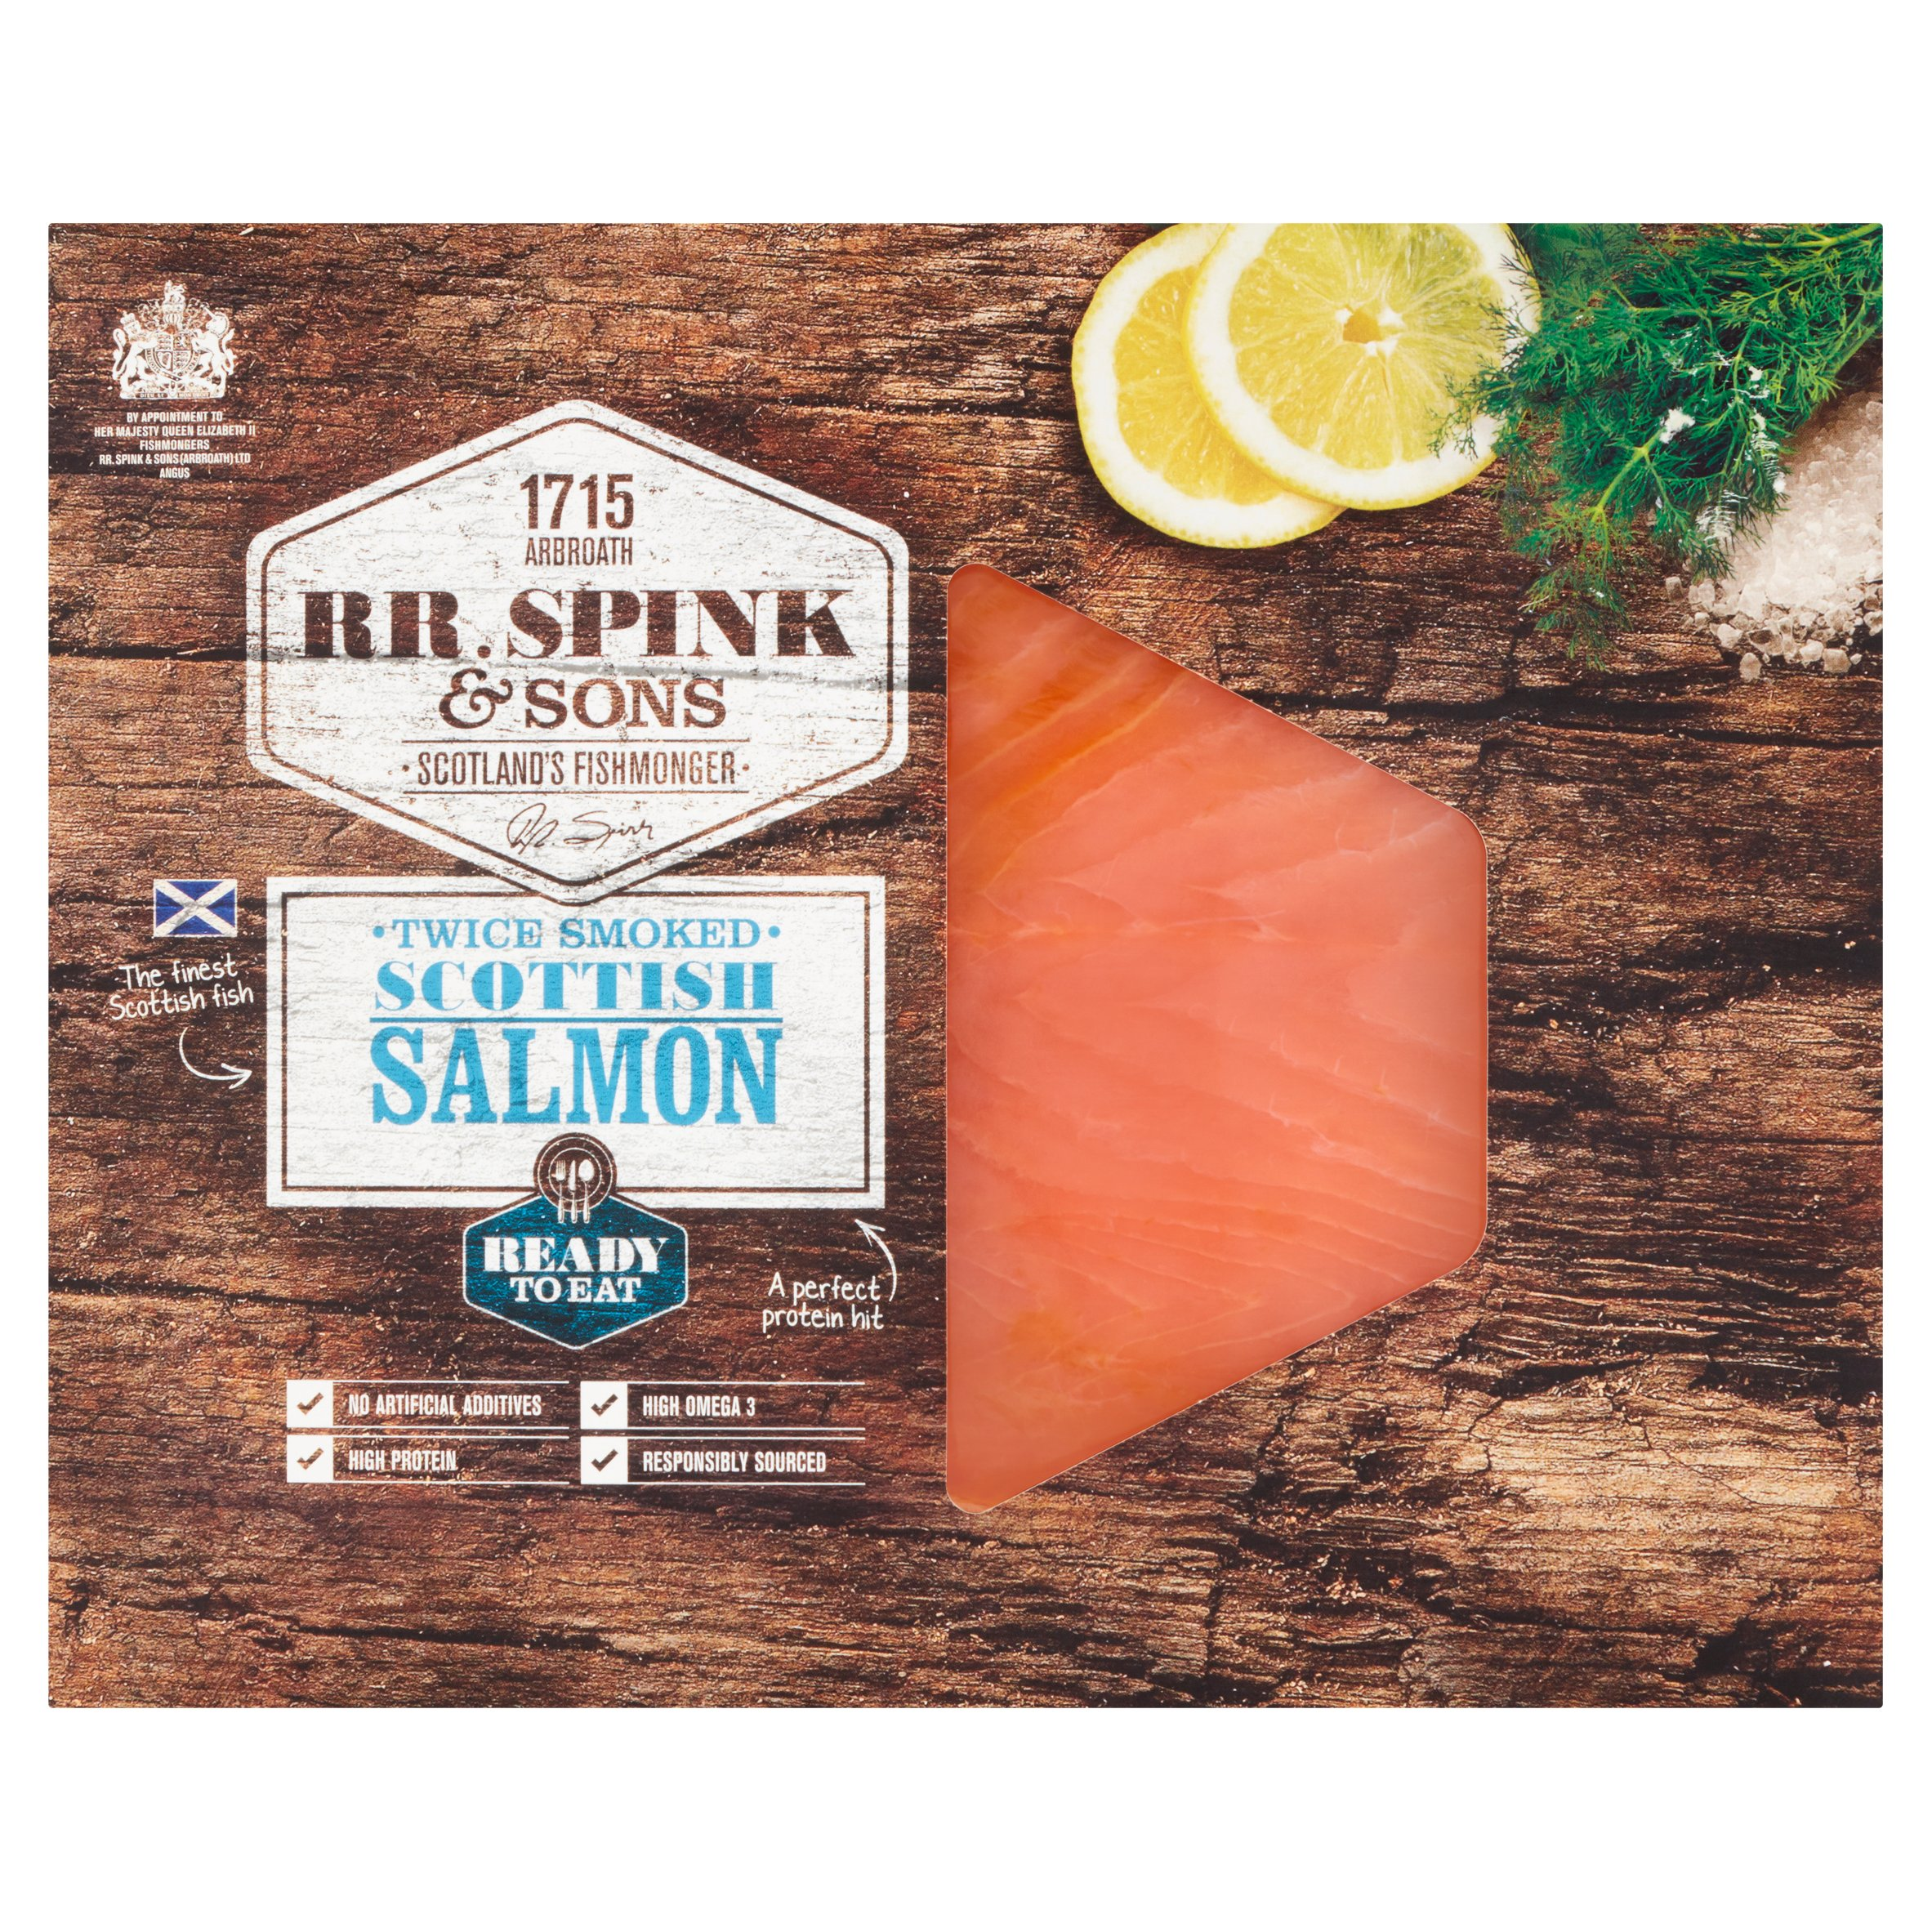 Rr. Spink & Sons Smoked Scottish Salmon 100G